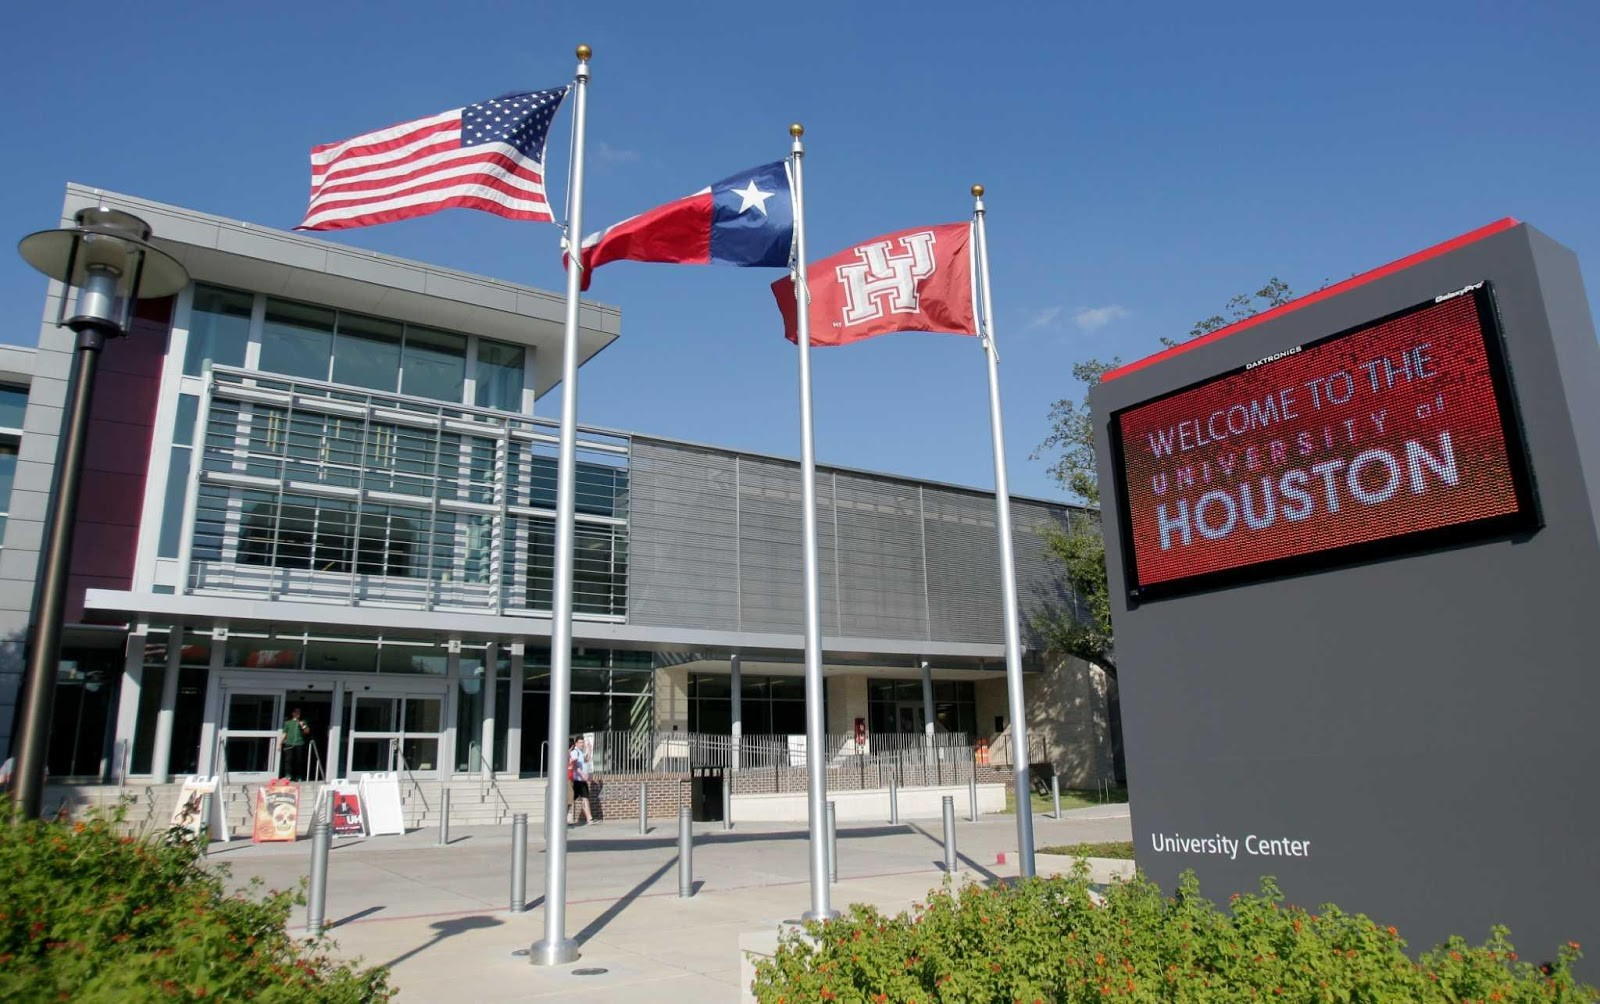 University of Houston, USA